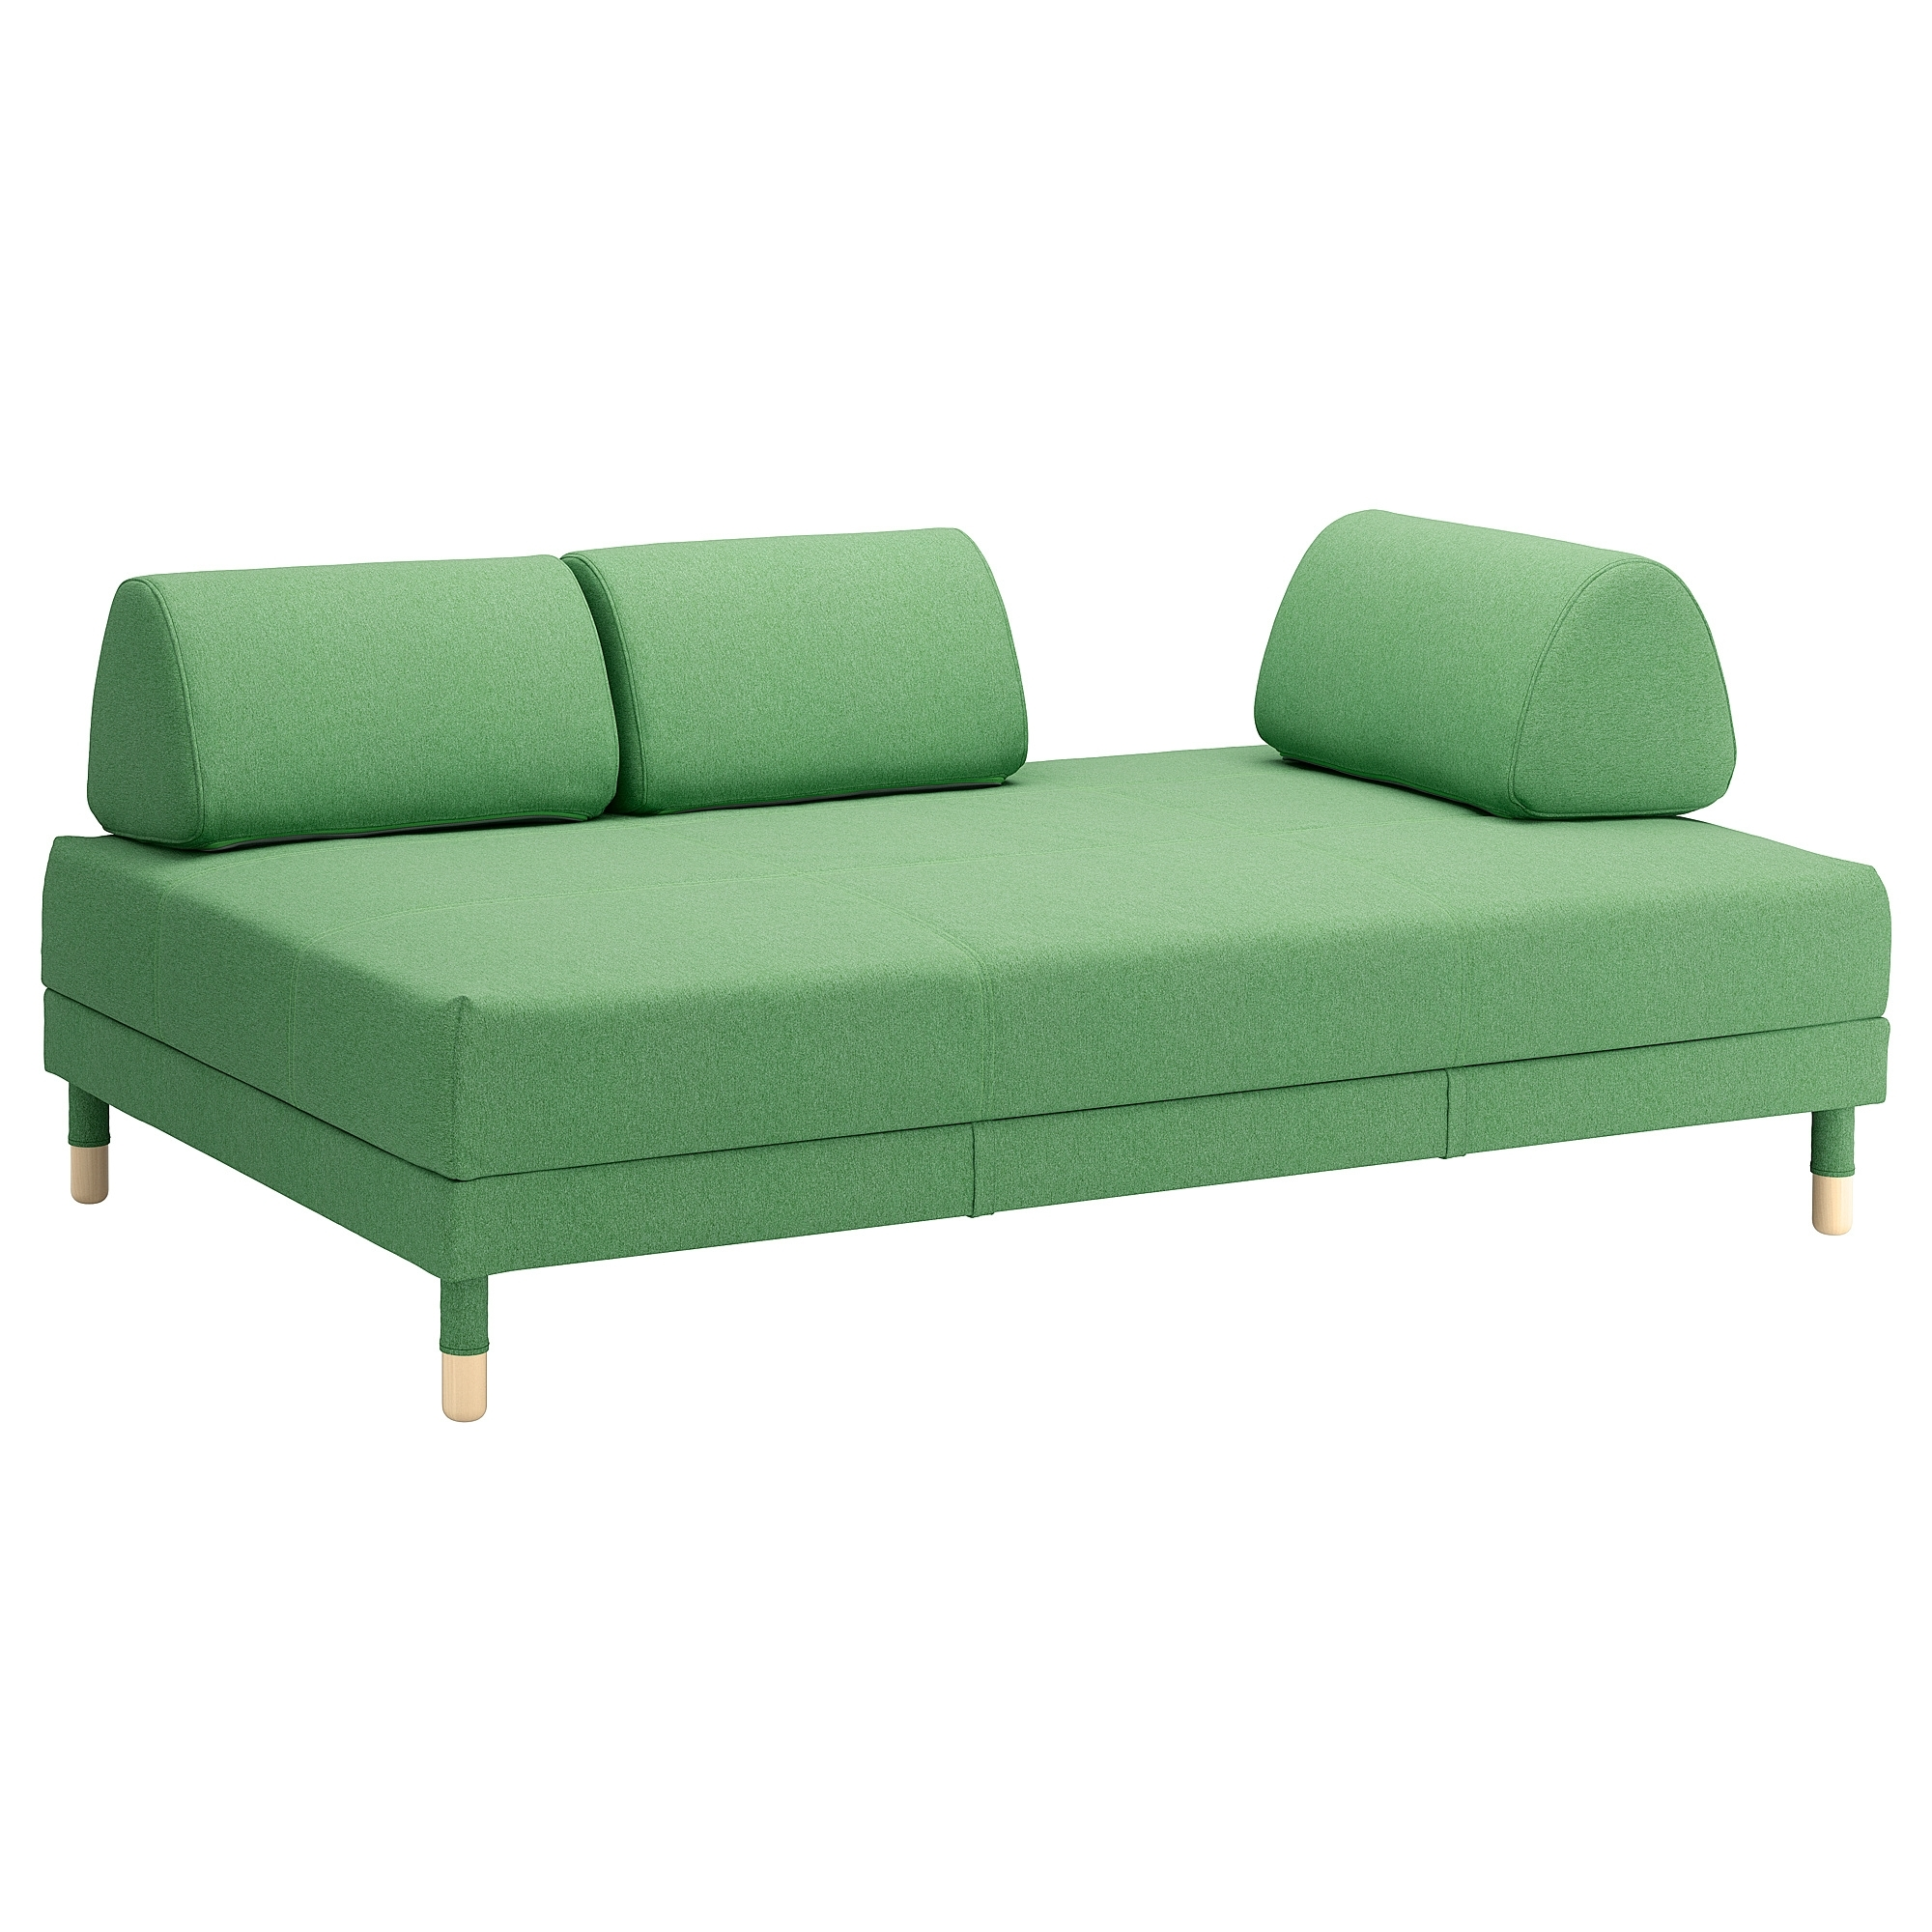 2018 Flottebo Sleeper Sofa – Lysed Green – Ikea Inside Ikea Sofa Beds With Chaise (View 14 of 15)